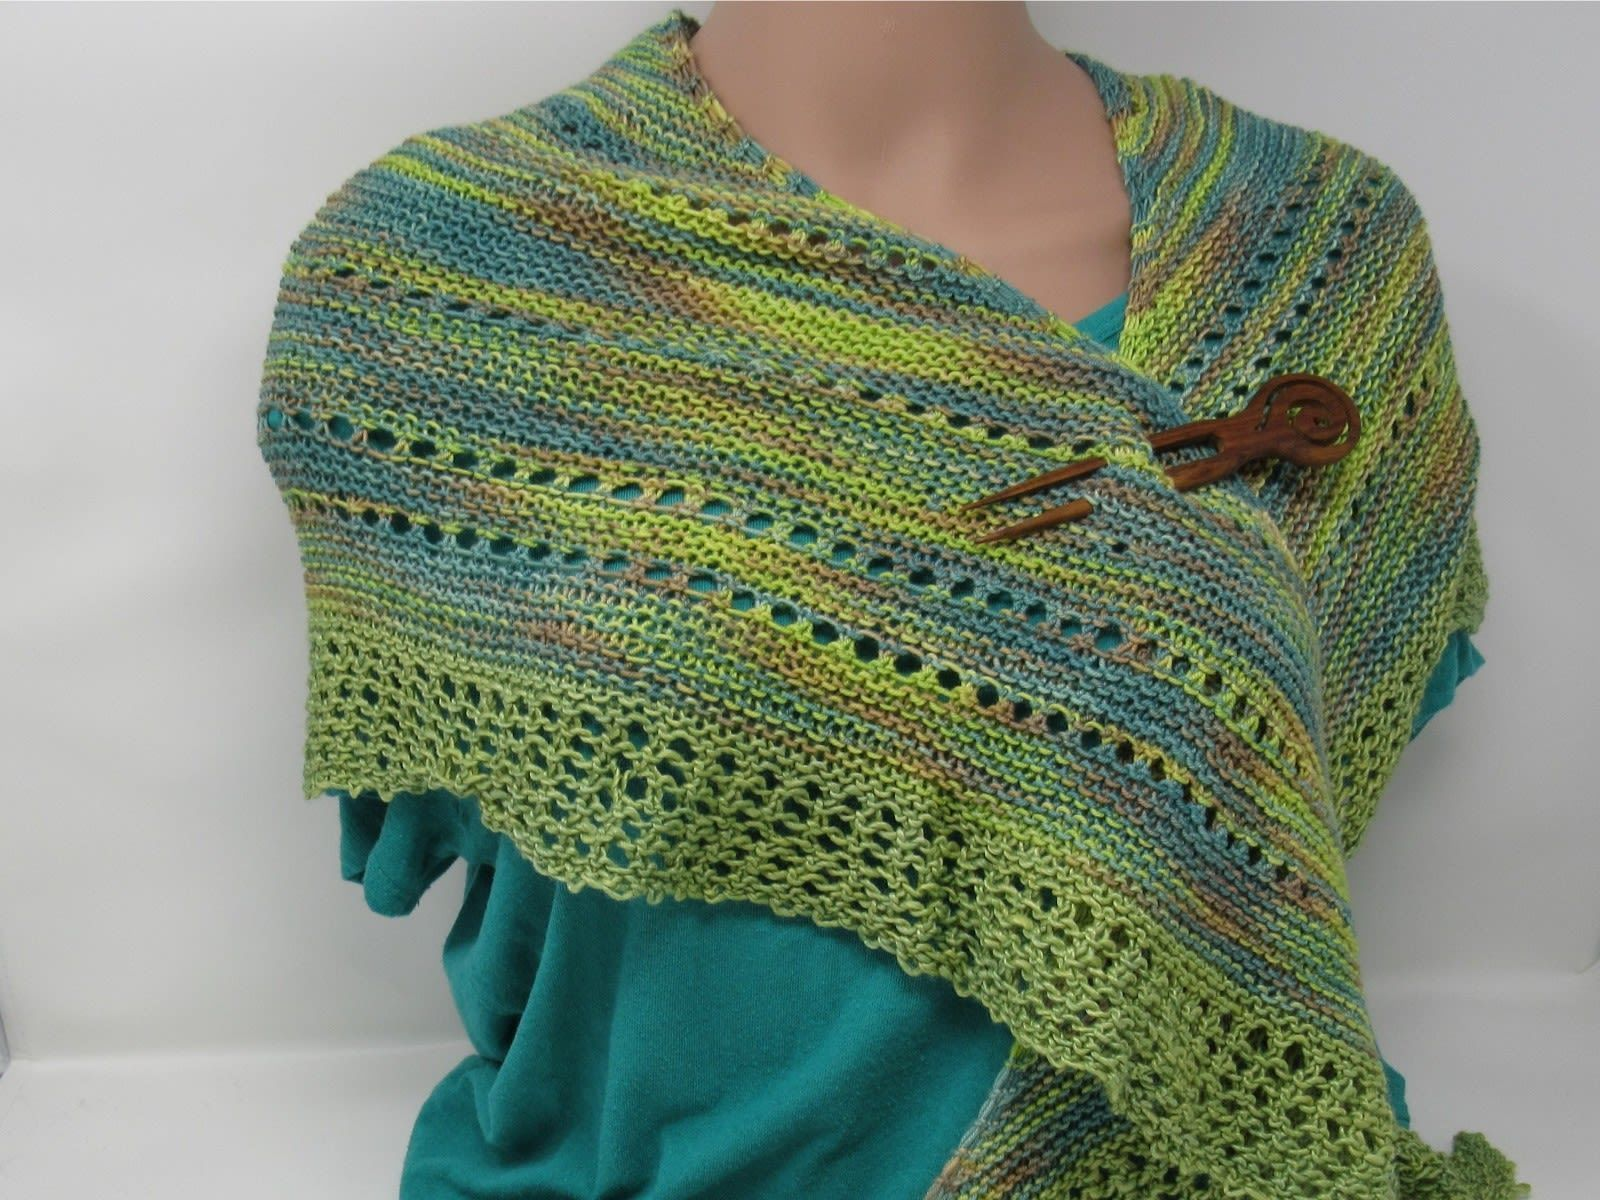 Handcrafted Knitted Shawl Green/Teal Lace Female Adult Greens Striped